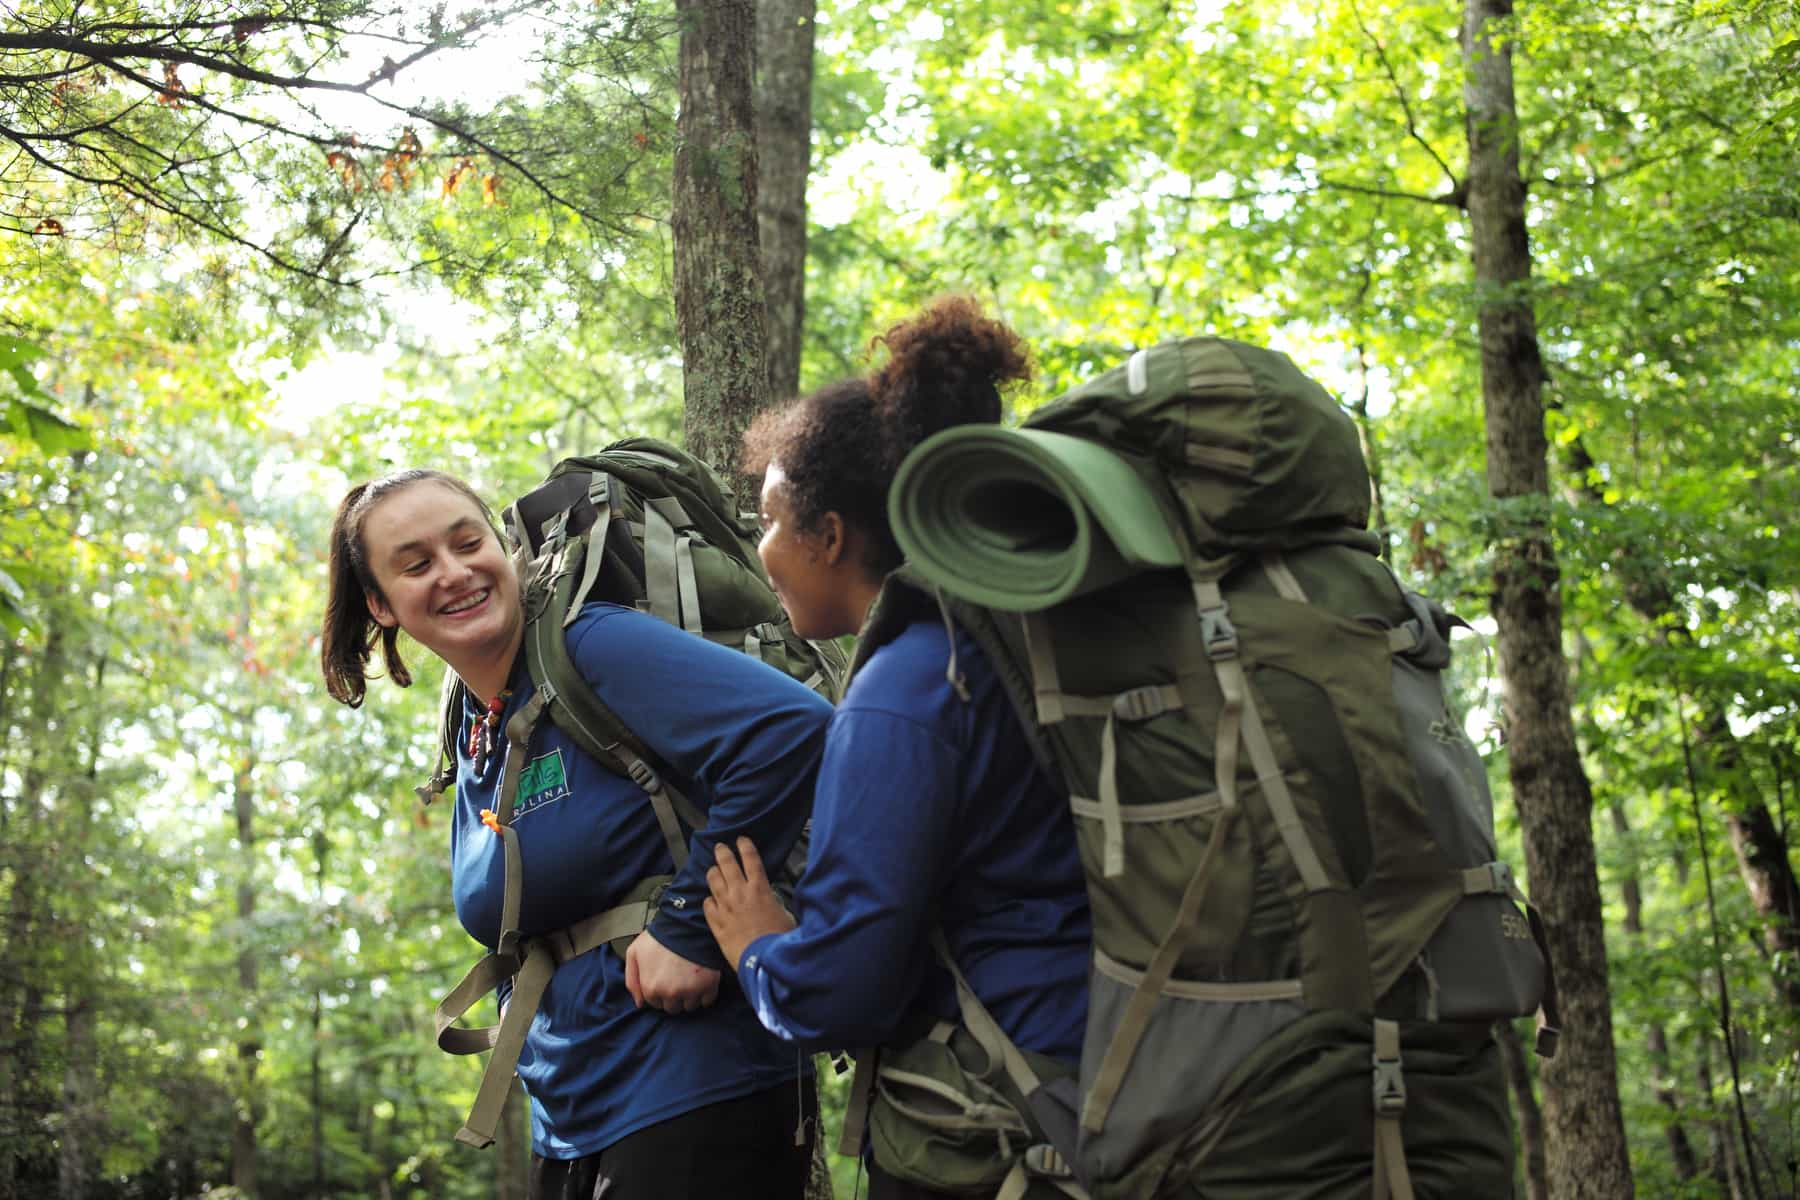 wilderness camps for troubled teens in virginia